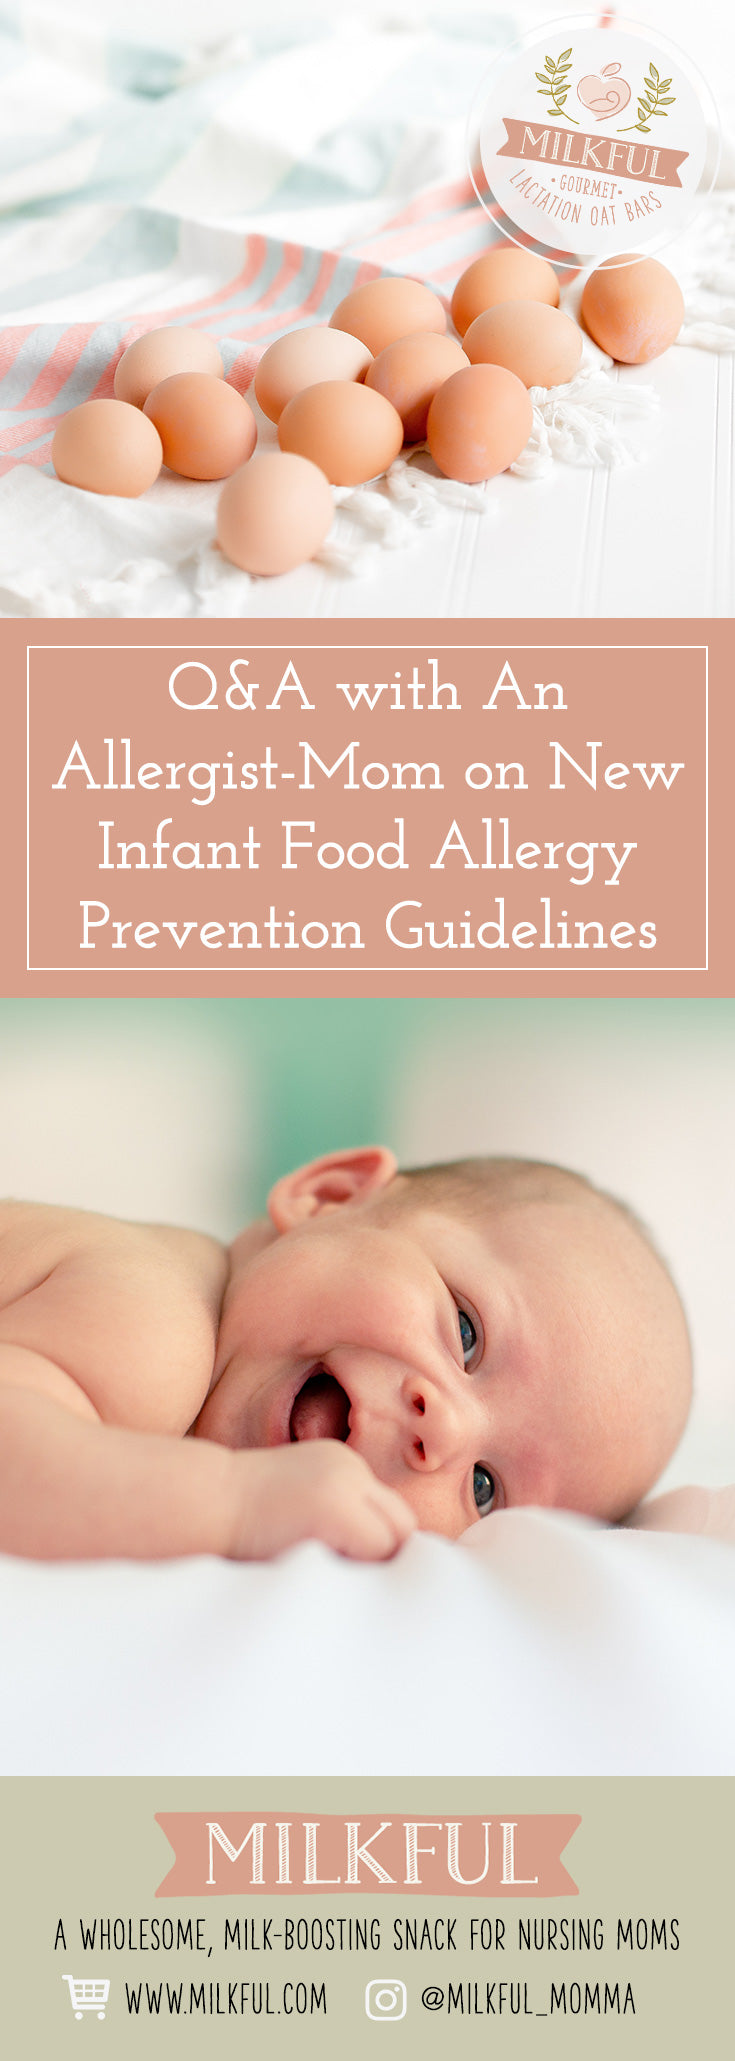 Q&A with An Allergist-Mom on New Infant Food Allergy Prevention Guidelines